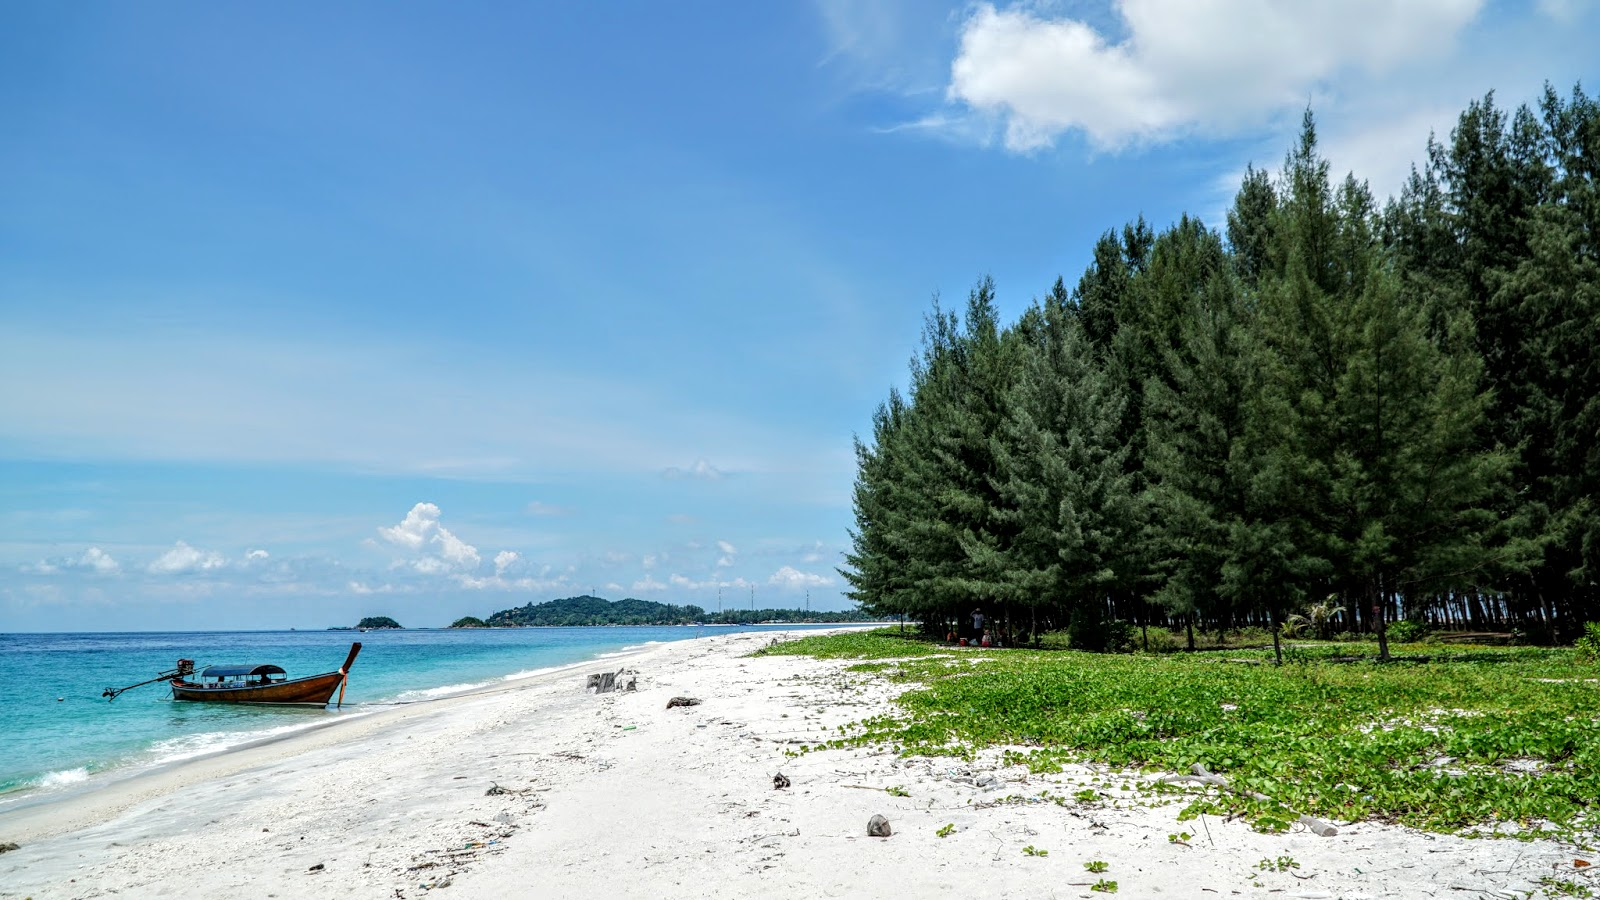 Beautiful stretch of beach in Koh Adang. From here, Koh Lipe can be seen in the far distance